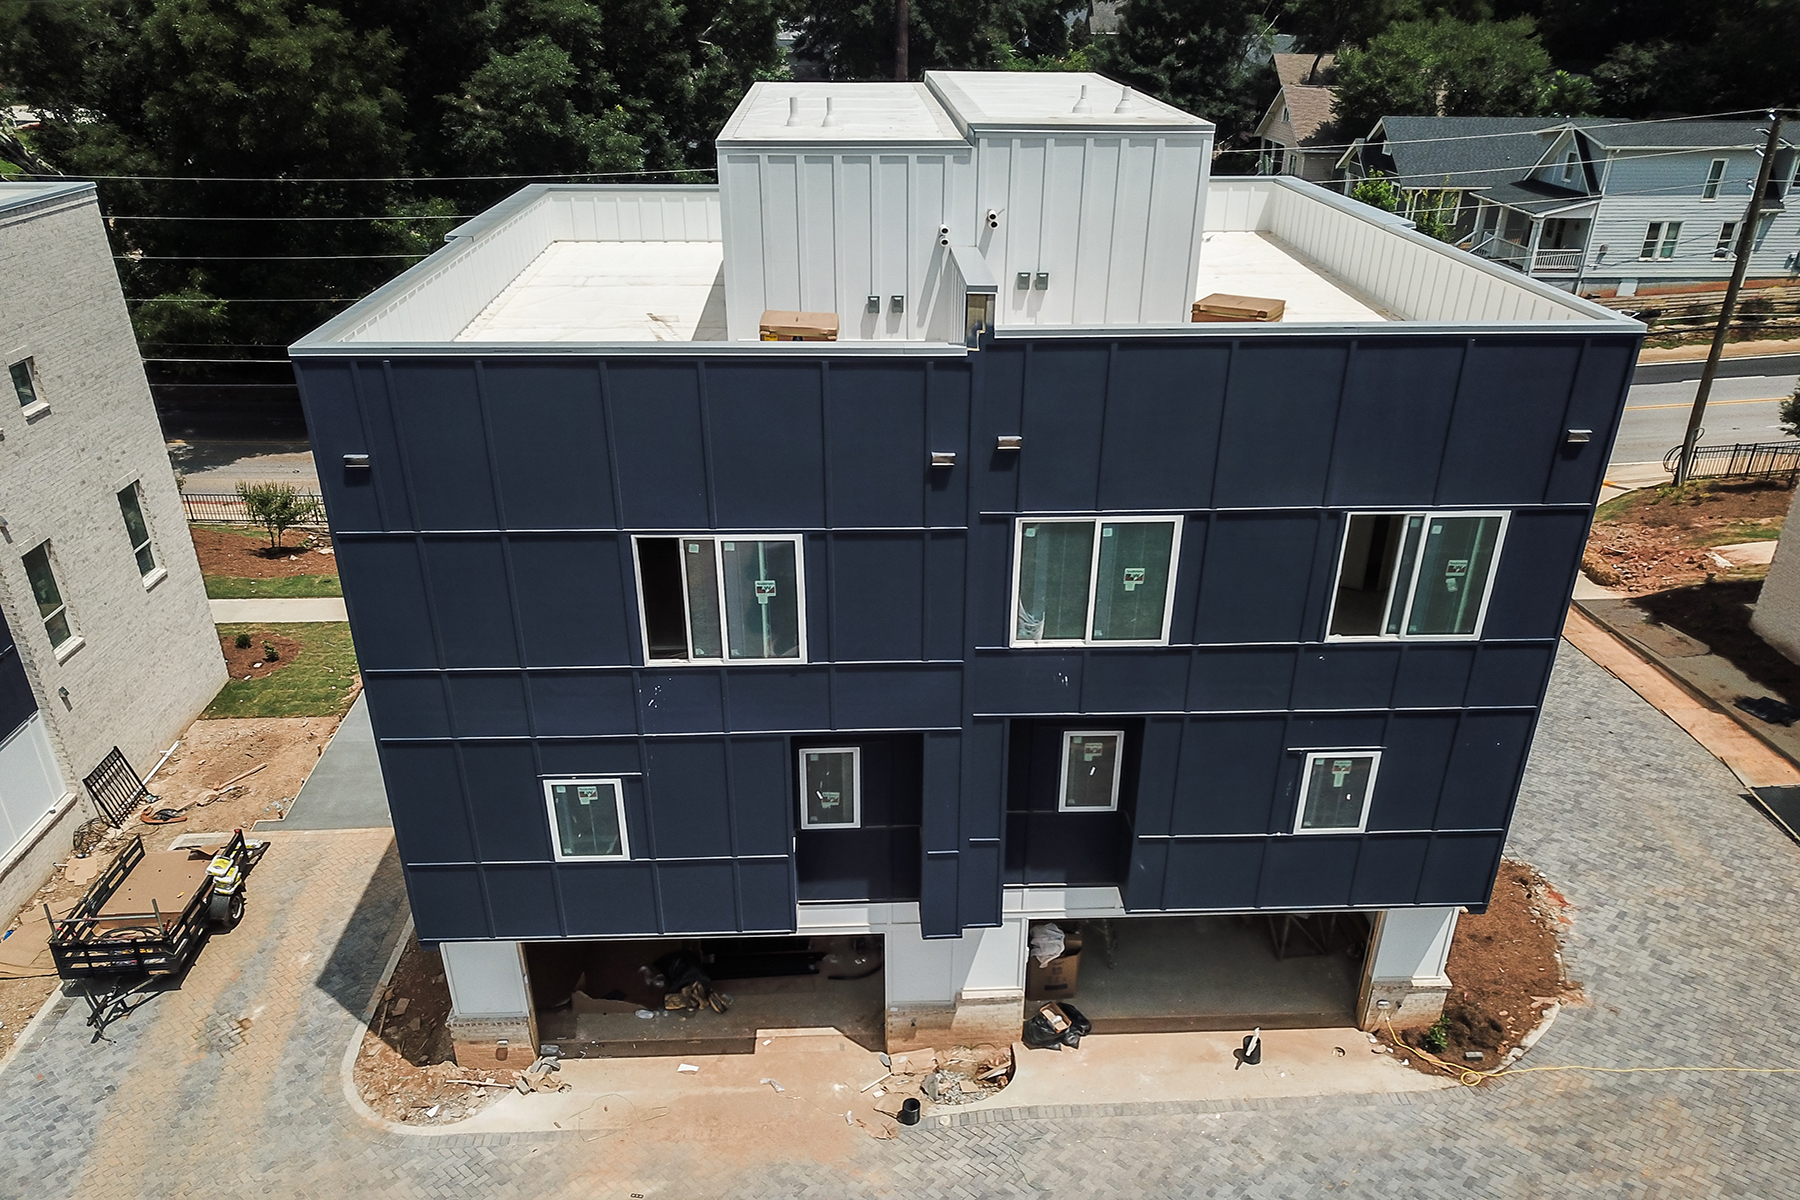 Additional photo for property listing at 62 Modern and Innovative Townhomes Featuring Rooftop Decks 2029 Memorial Drive #1 Atlanta, Georgia 30317 United States